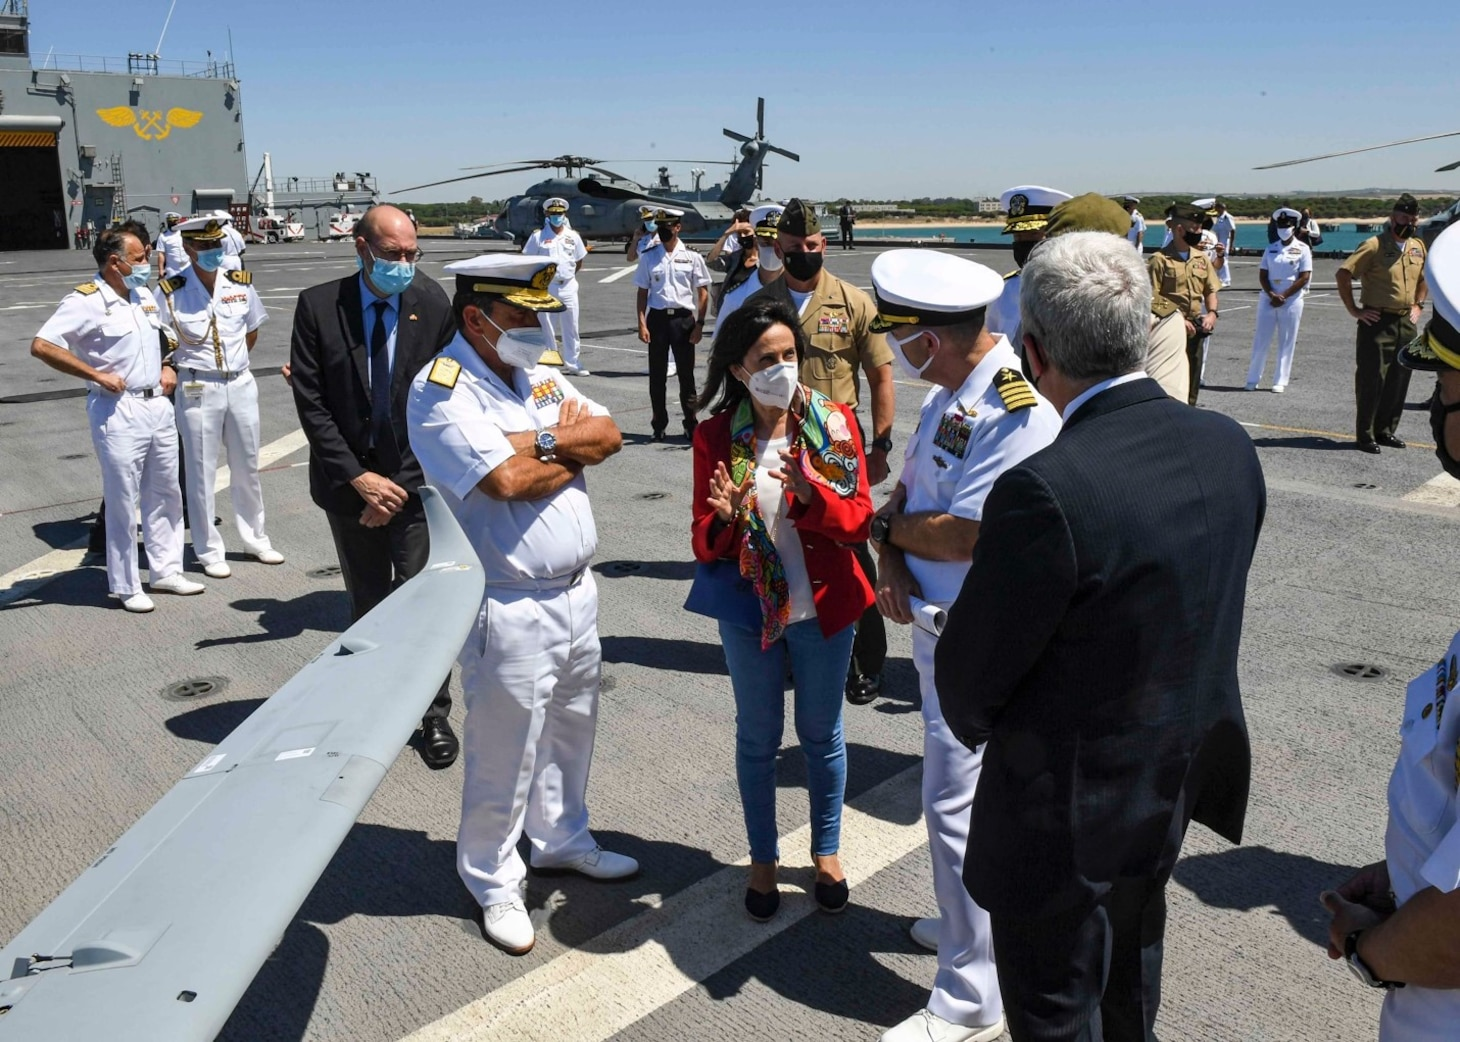 """(July 8, 2021) Spanish Minister of Defense Margarita Robles, center, speaks with Capt. Michael Concannon, commanding officer, right, about the ship's flight deck capabilities during a tour aboard the Expeditionary Sea Base USS Hershel """"Woody"""" Williams (ESB 4) in the Atlantic Ocean, July 8, 2021. Hershel """"Woody"""" Williams is on a scheduled deployment in the U.S. Sixth Fleet area of operations in support of U.S. national interests and security in Europe and Africa."""